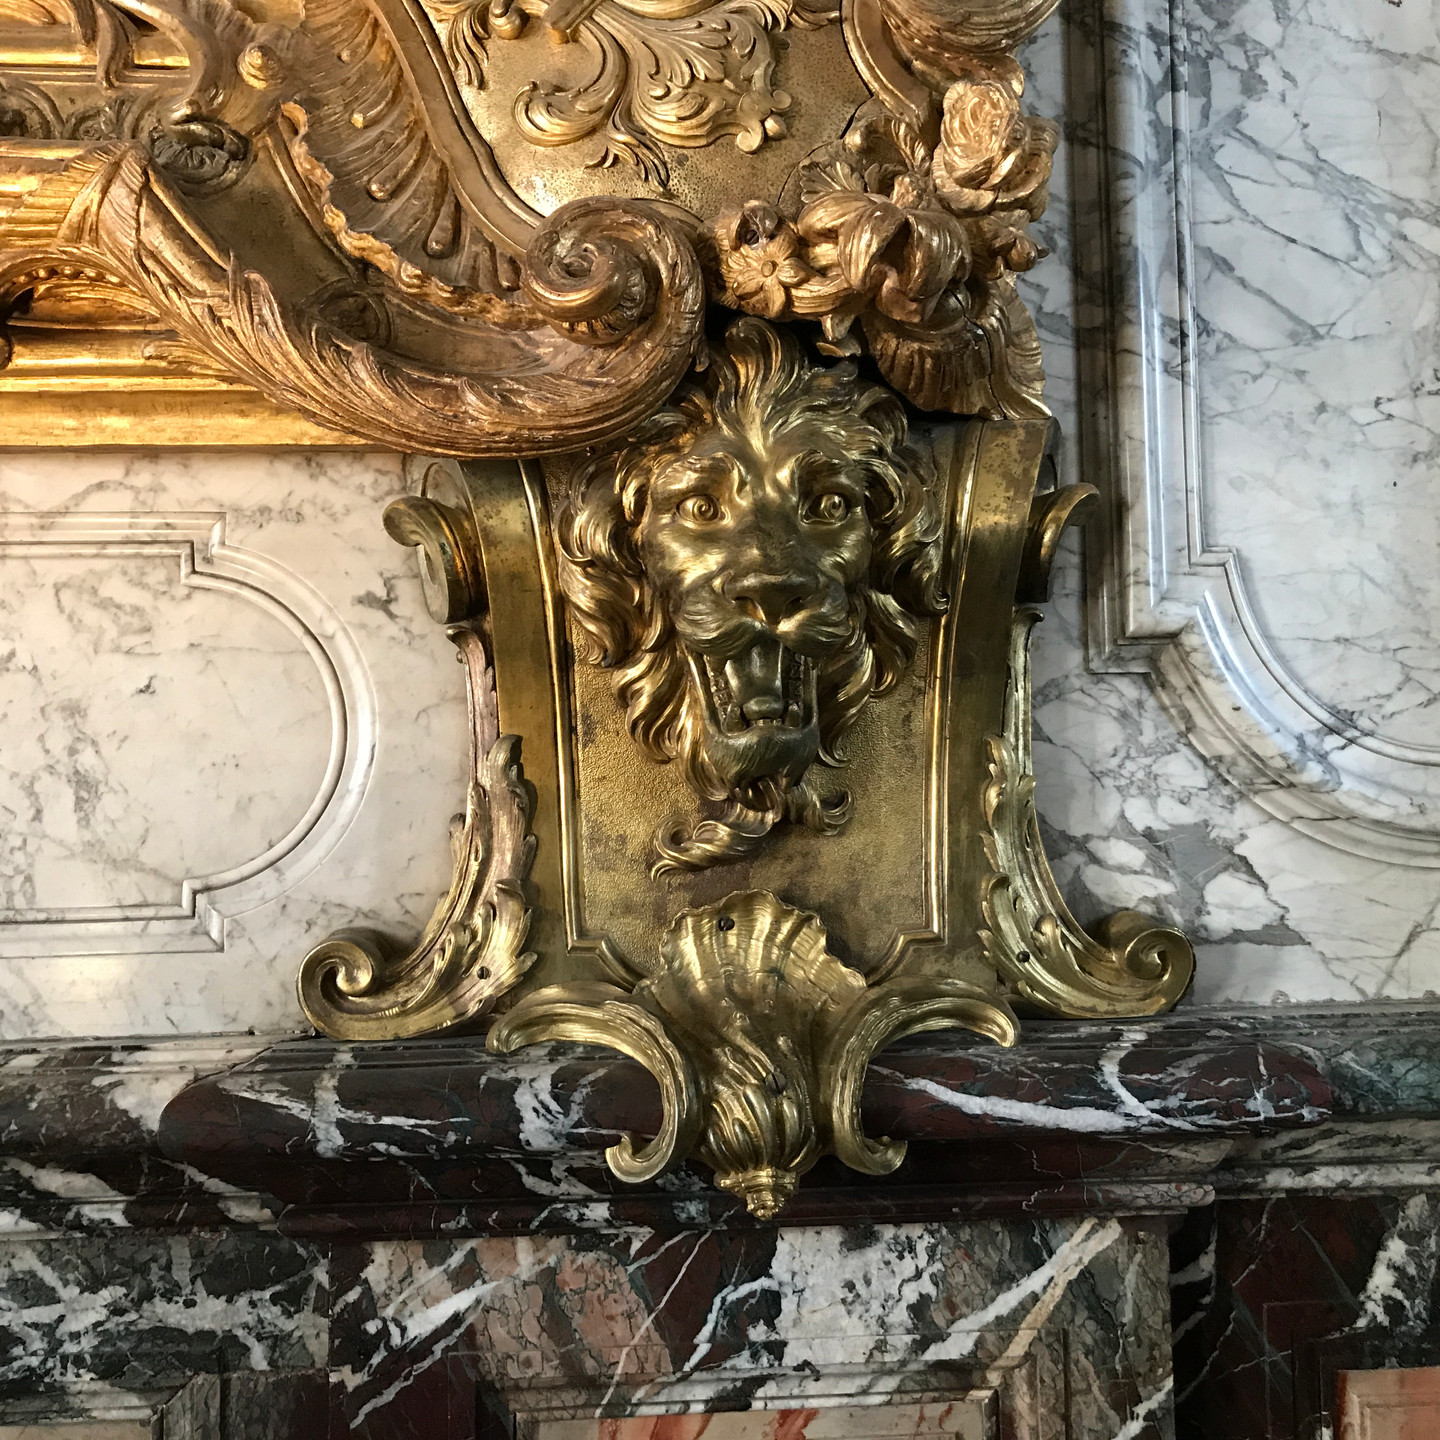 Gilded Lion Fireplace Detail at Versailles